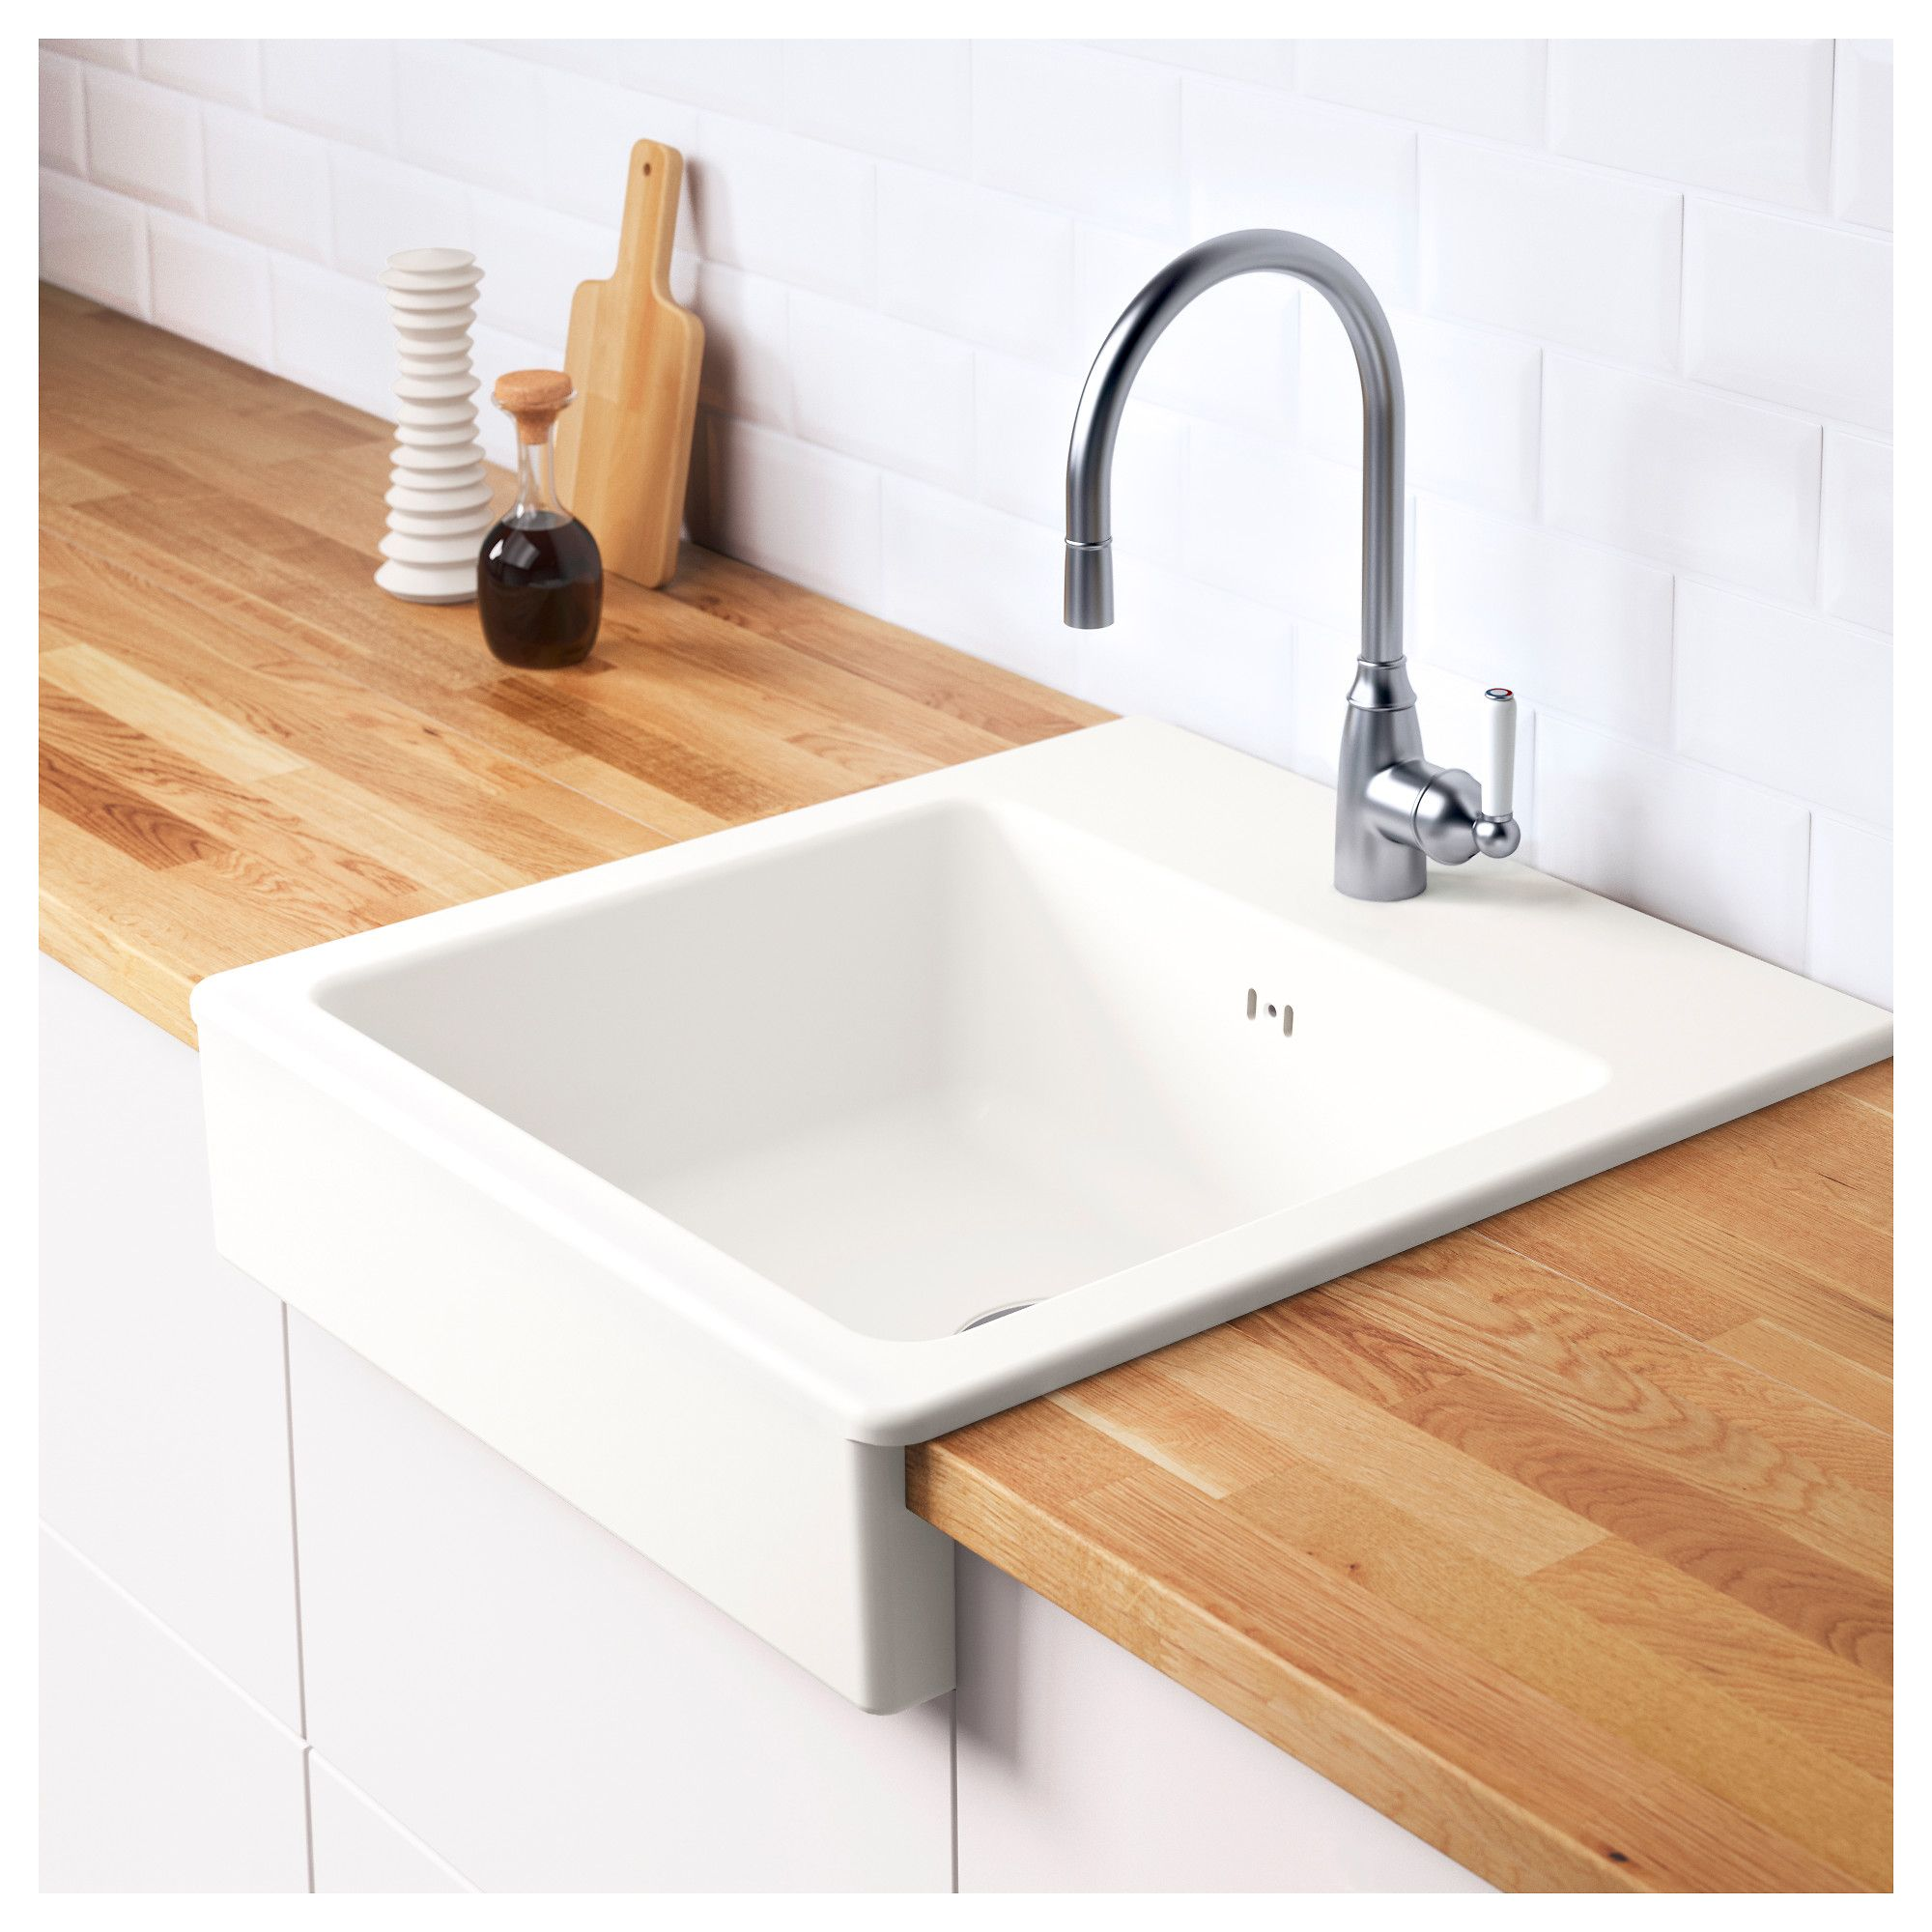 Ikea domsjö onset sink 1 bowl white 62x66 cm 25 year guarantee read about the terms in the guarantee brochure